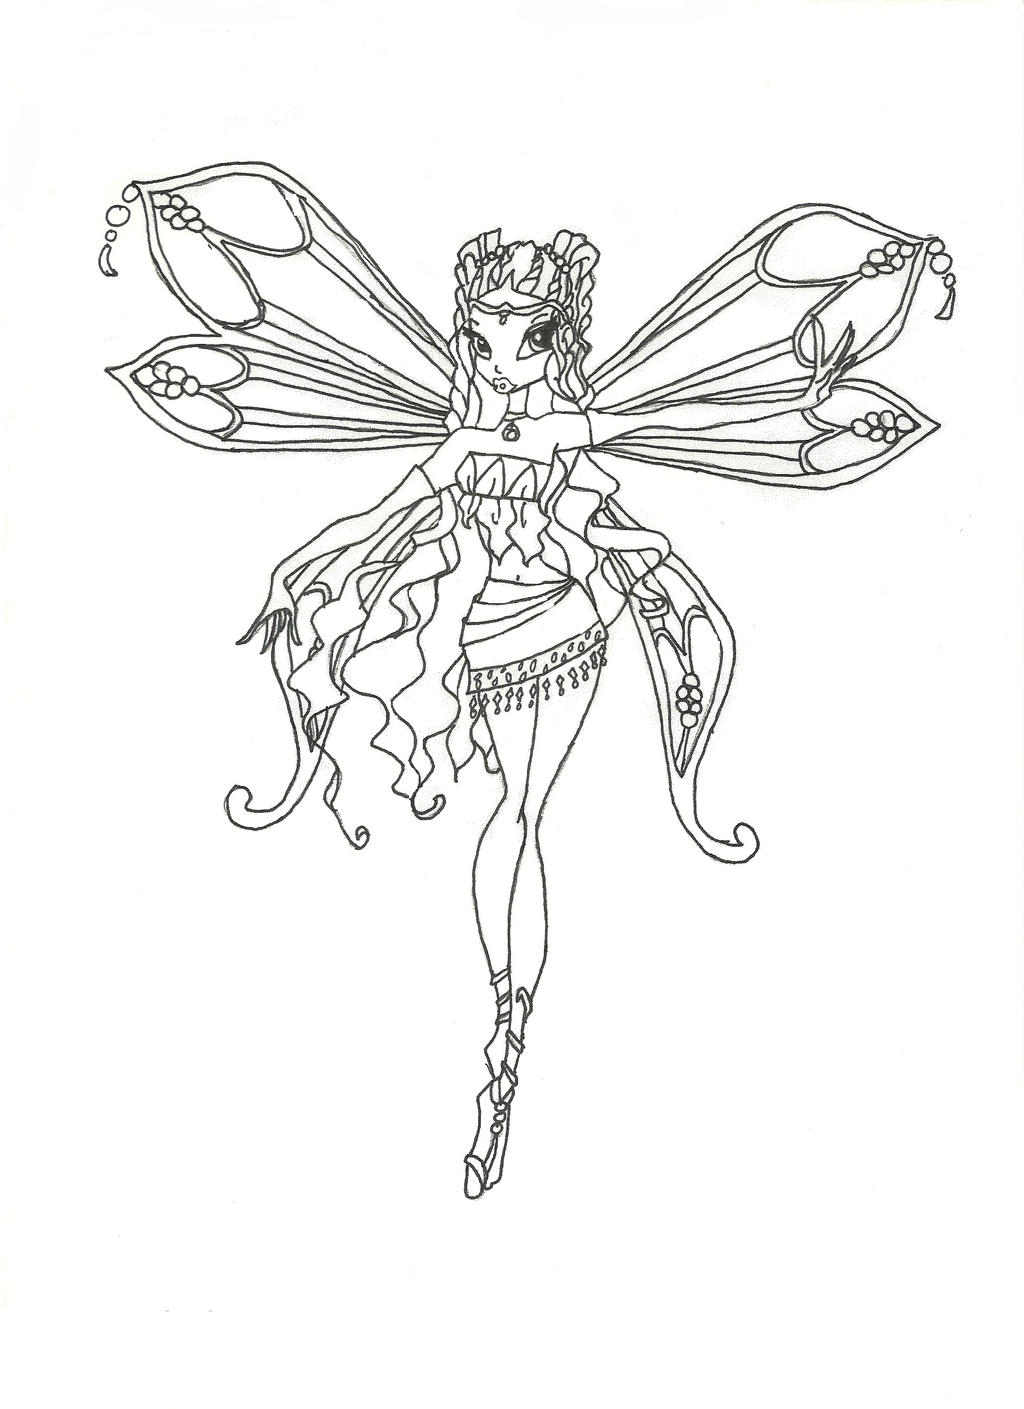 winx club musa coloring pages - winx club musa enchantix coloring pages murderthestout